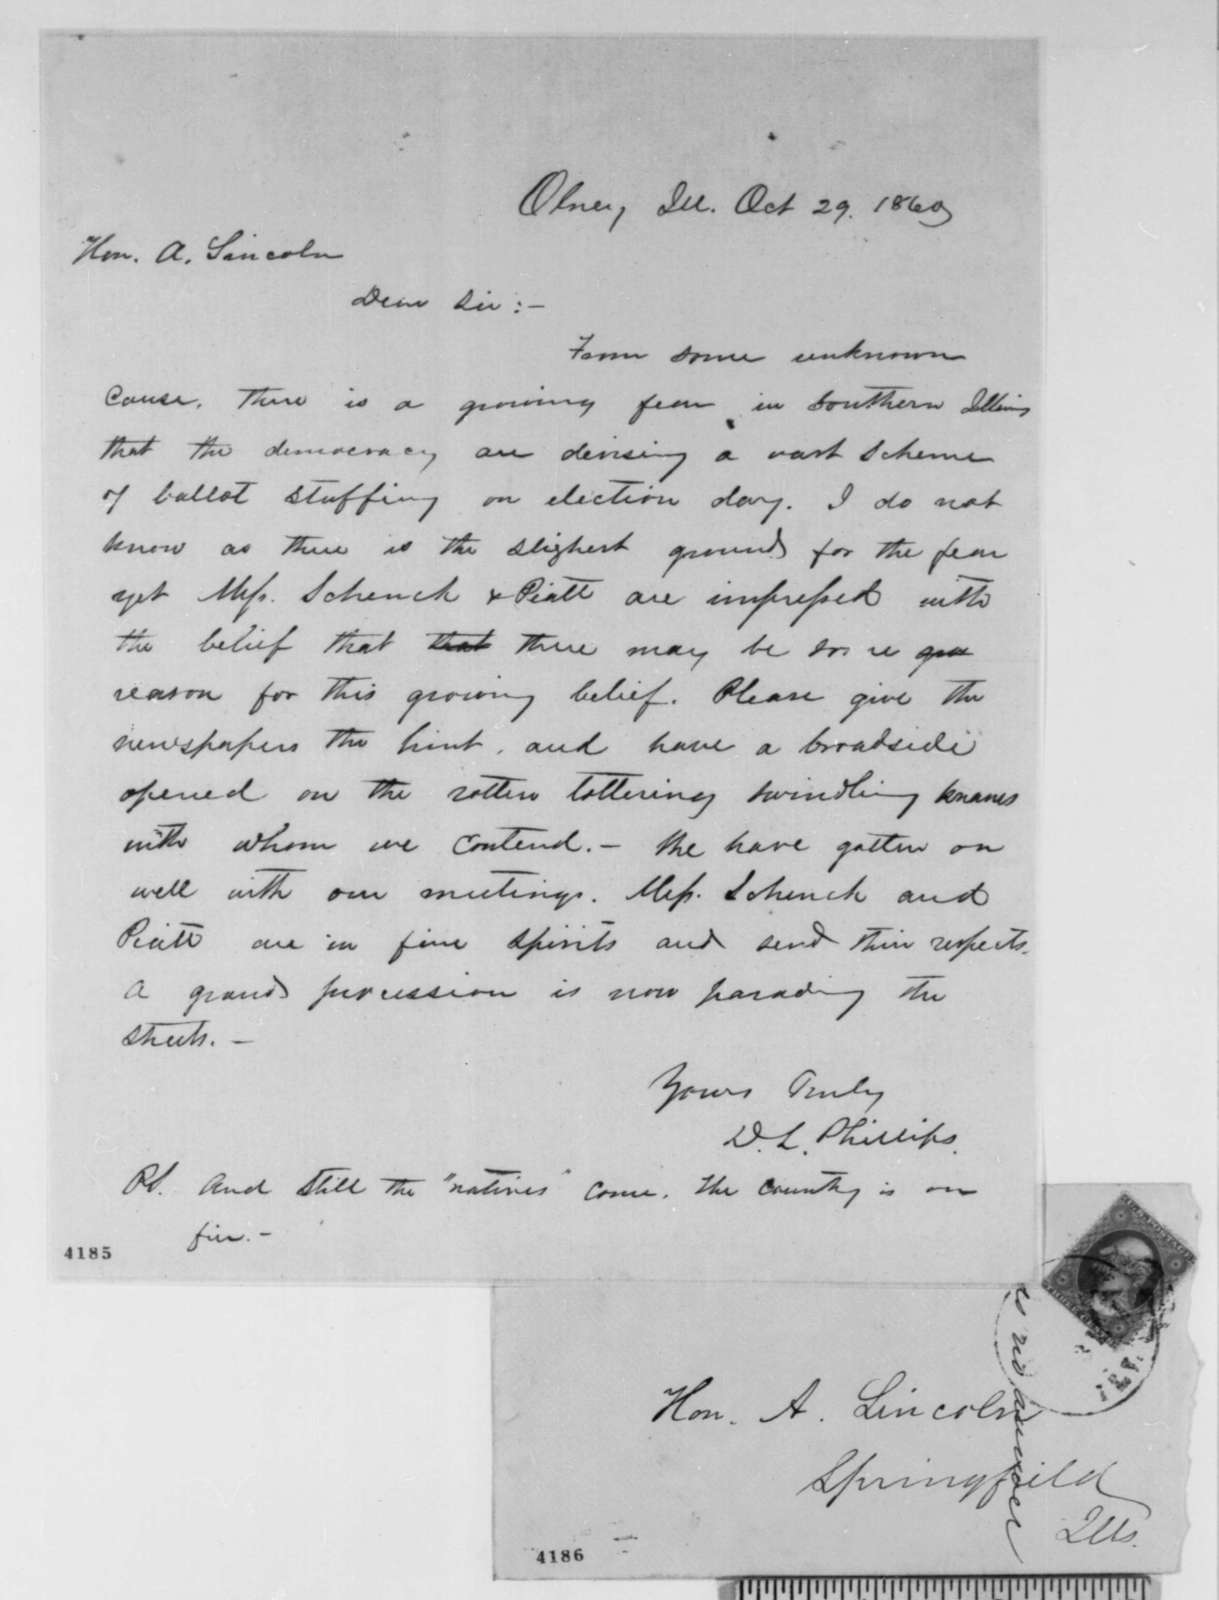 David L. Phillips to Abraham Lincoln, Monday, October 29, 1860  (Warns of possible Democratic treachery in Southern Illinois)